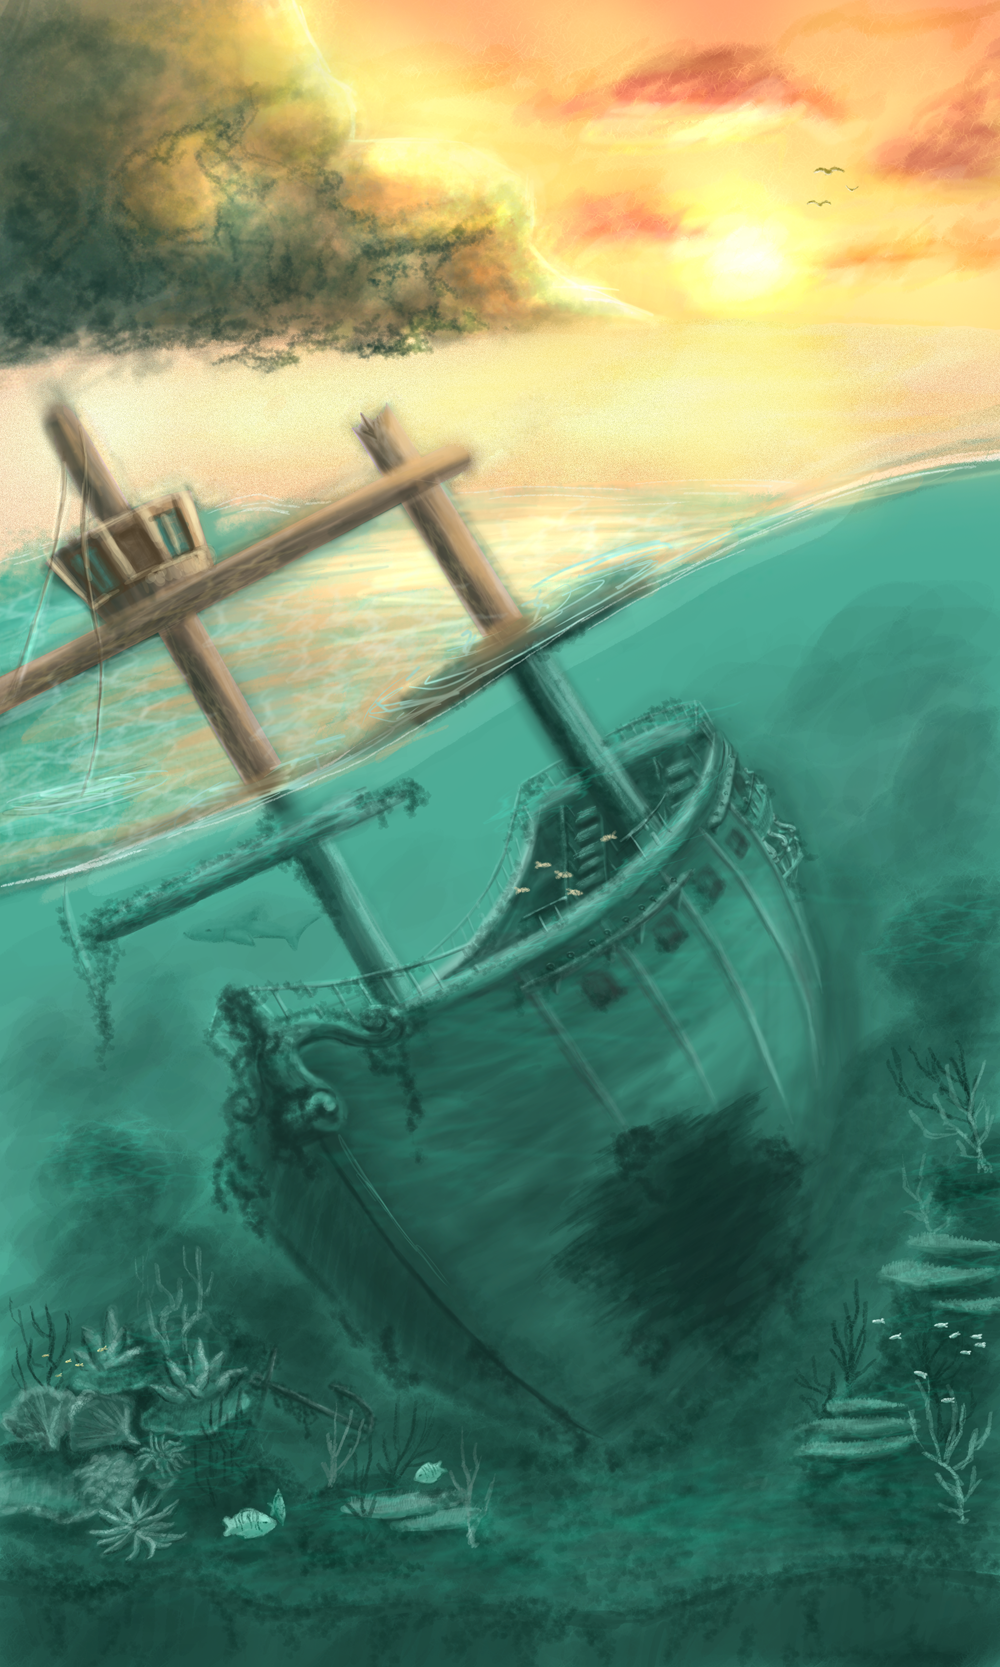 Shipwreck by silly_rules